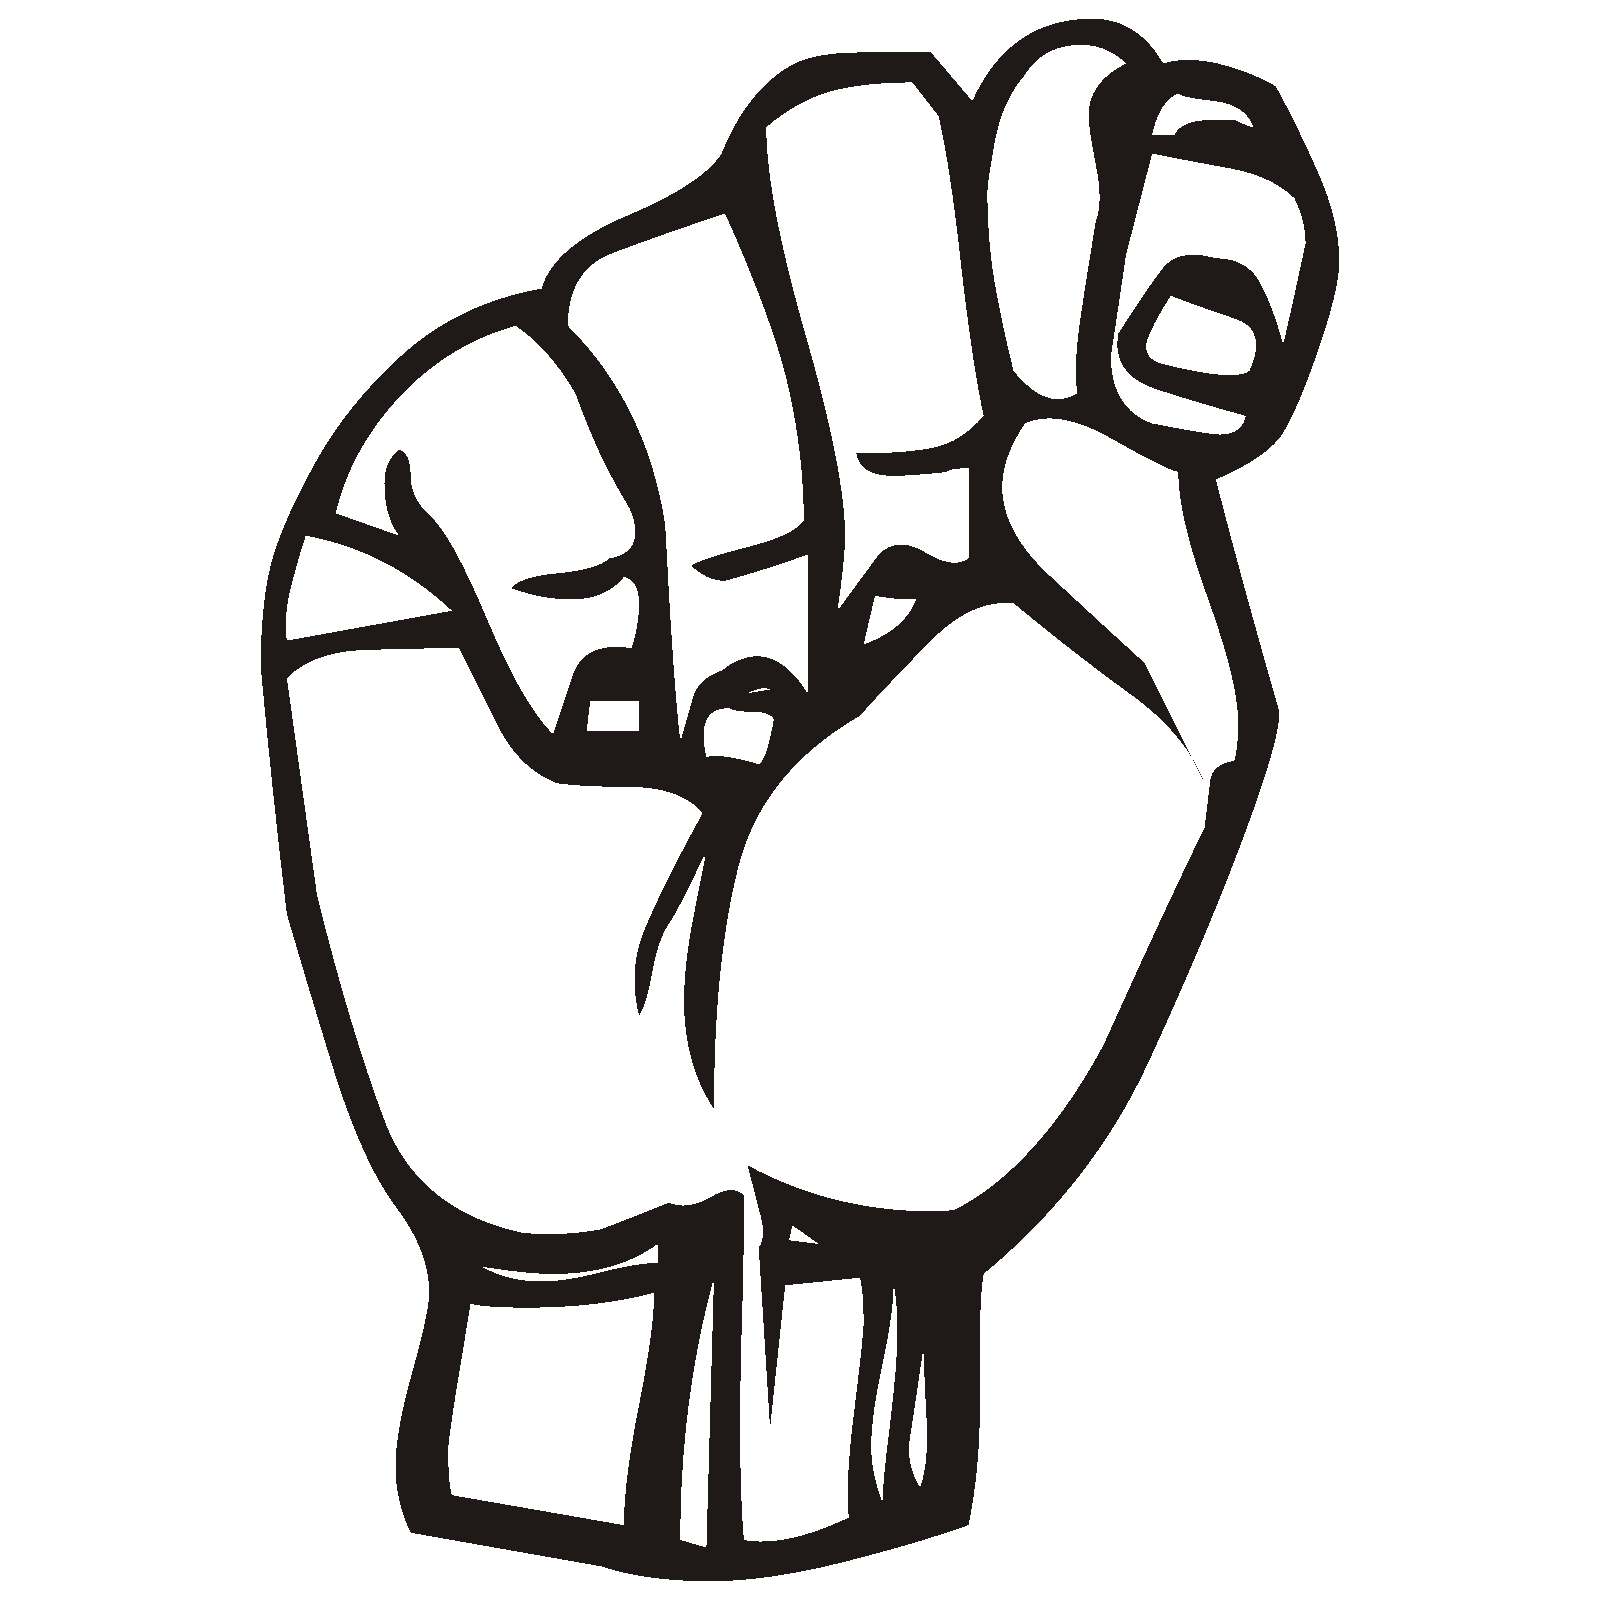 Sign Language T Clip art, Icon and SVG - SVG Clipart